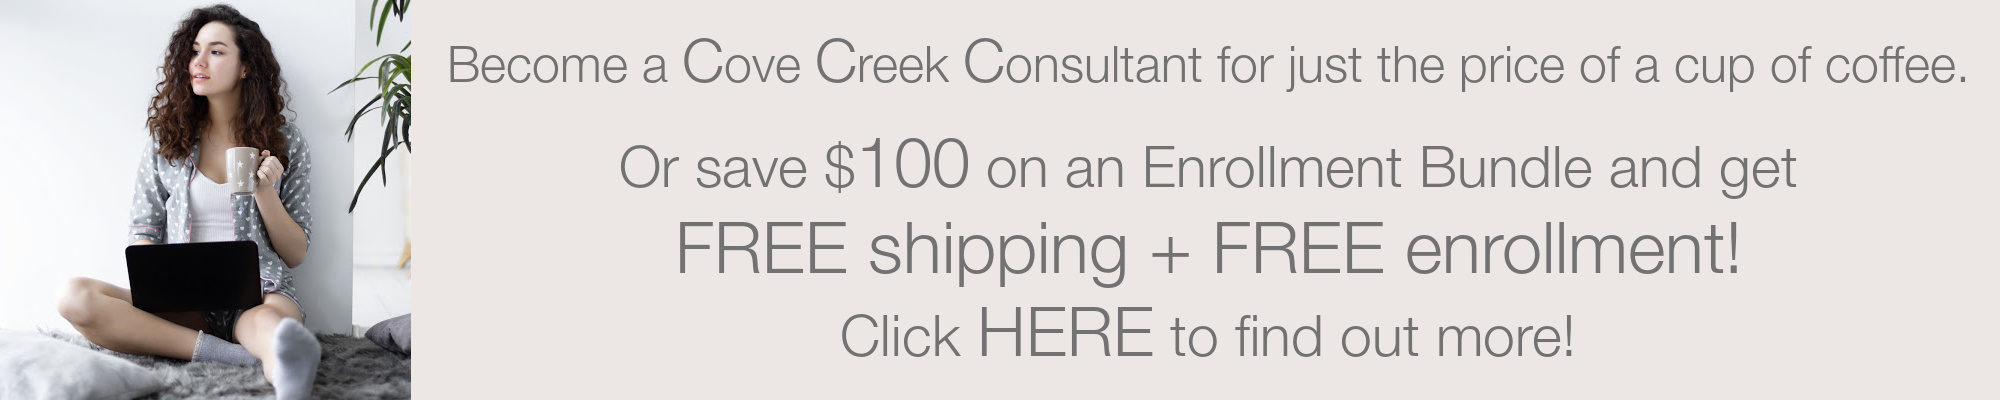 Become a Consultant for Cove Creek